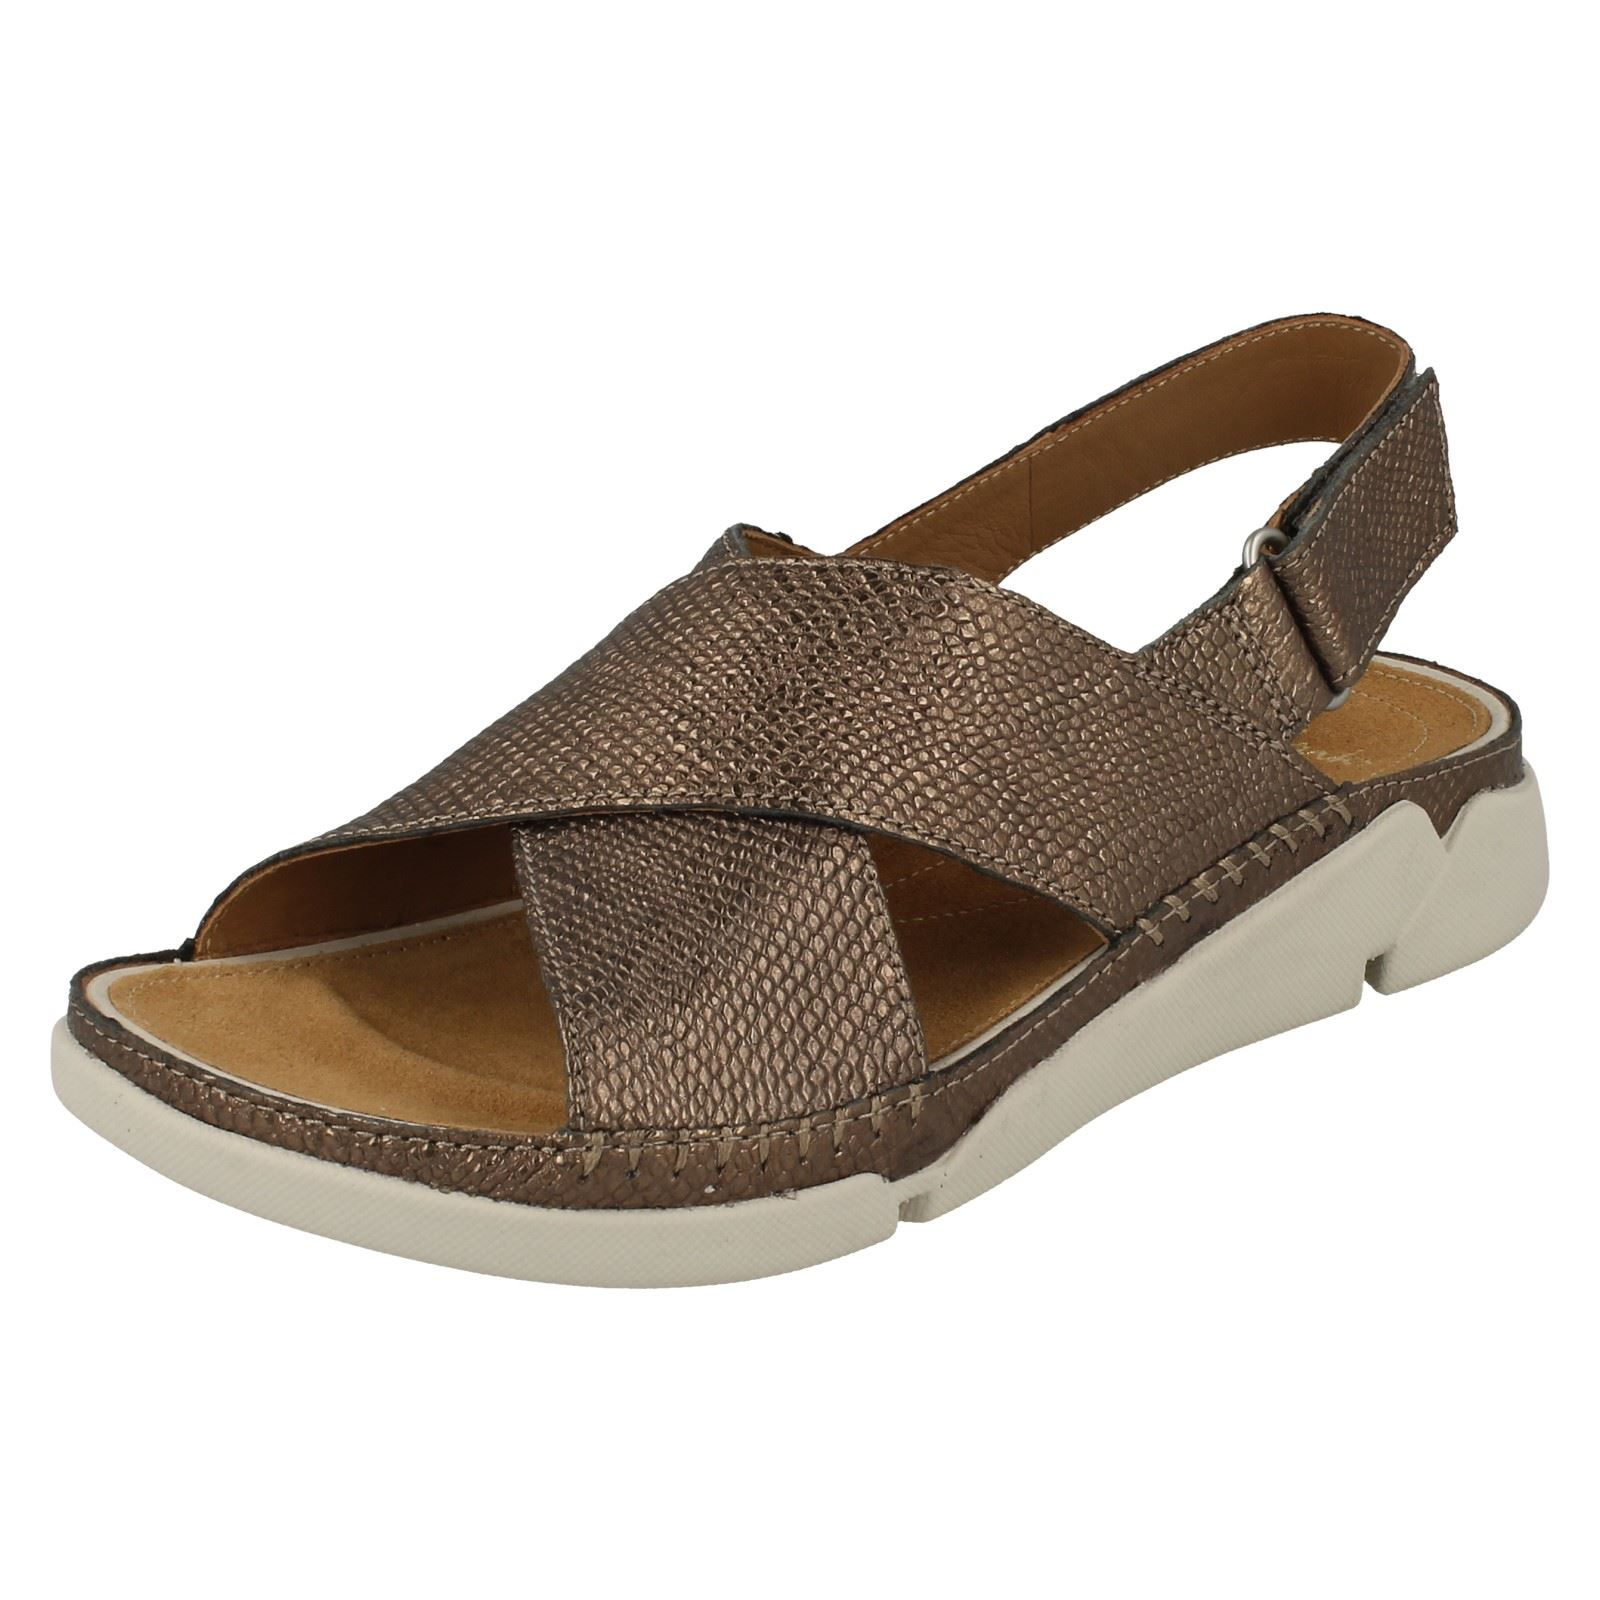 Summer Ladies Shoes At Clarks